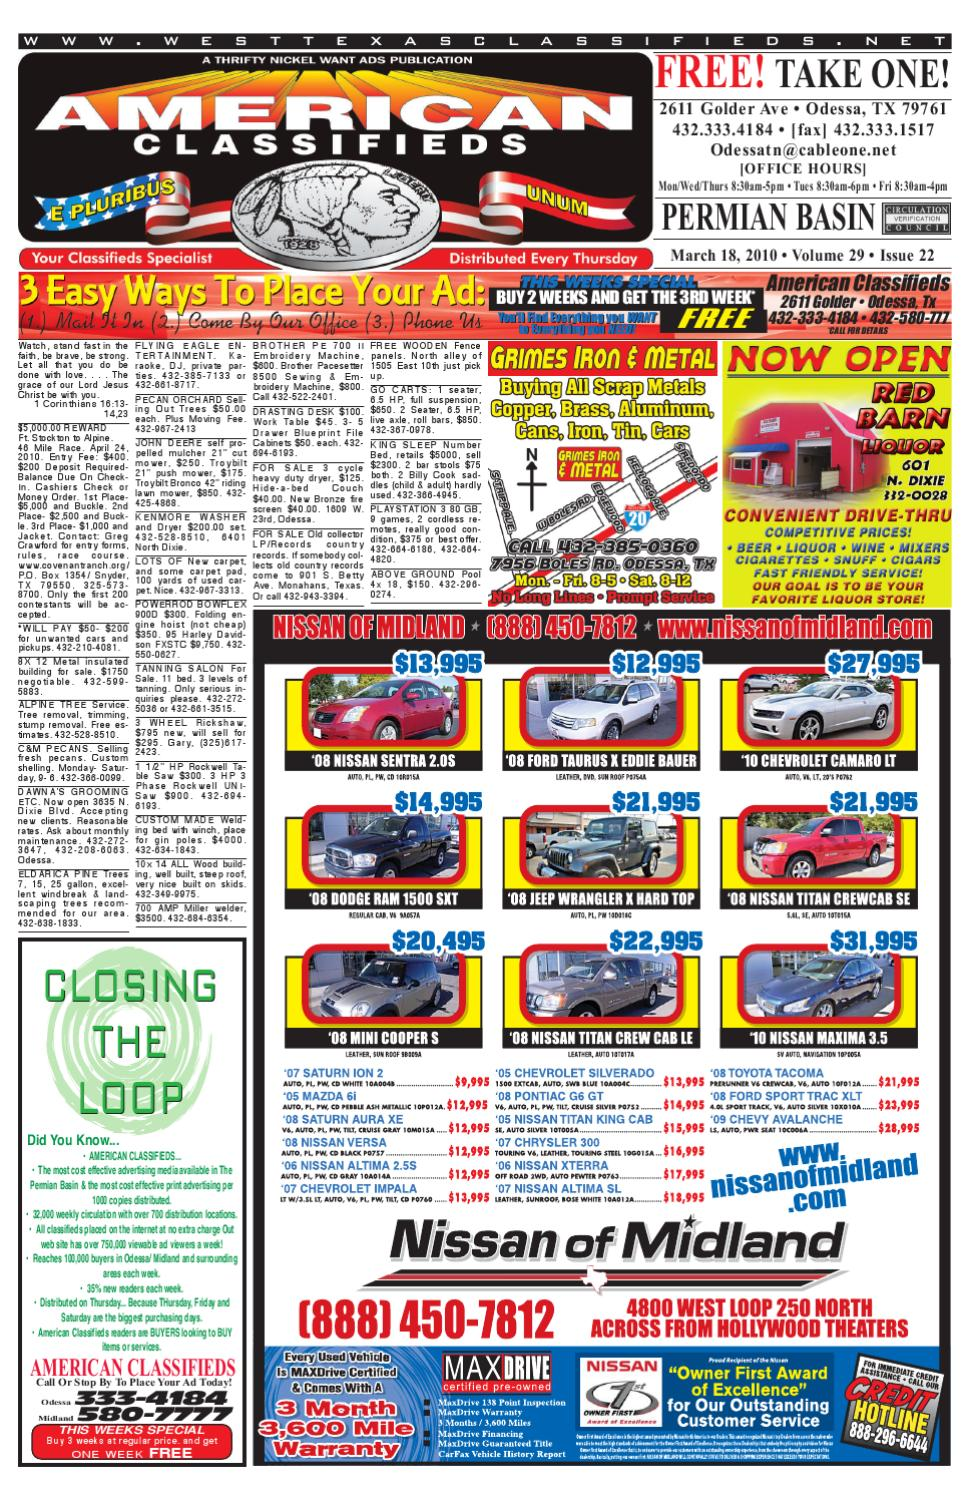 987c7ee965 American Classifieds   Thrifty Nickel by MIDLAND  ODESSA AMERICAN  CLASSIFIEDS - issuu